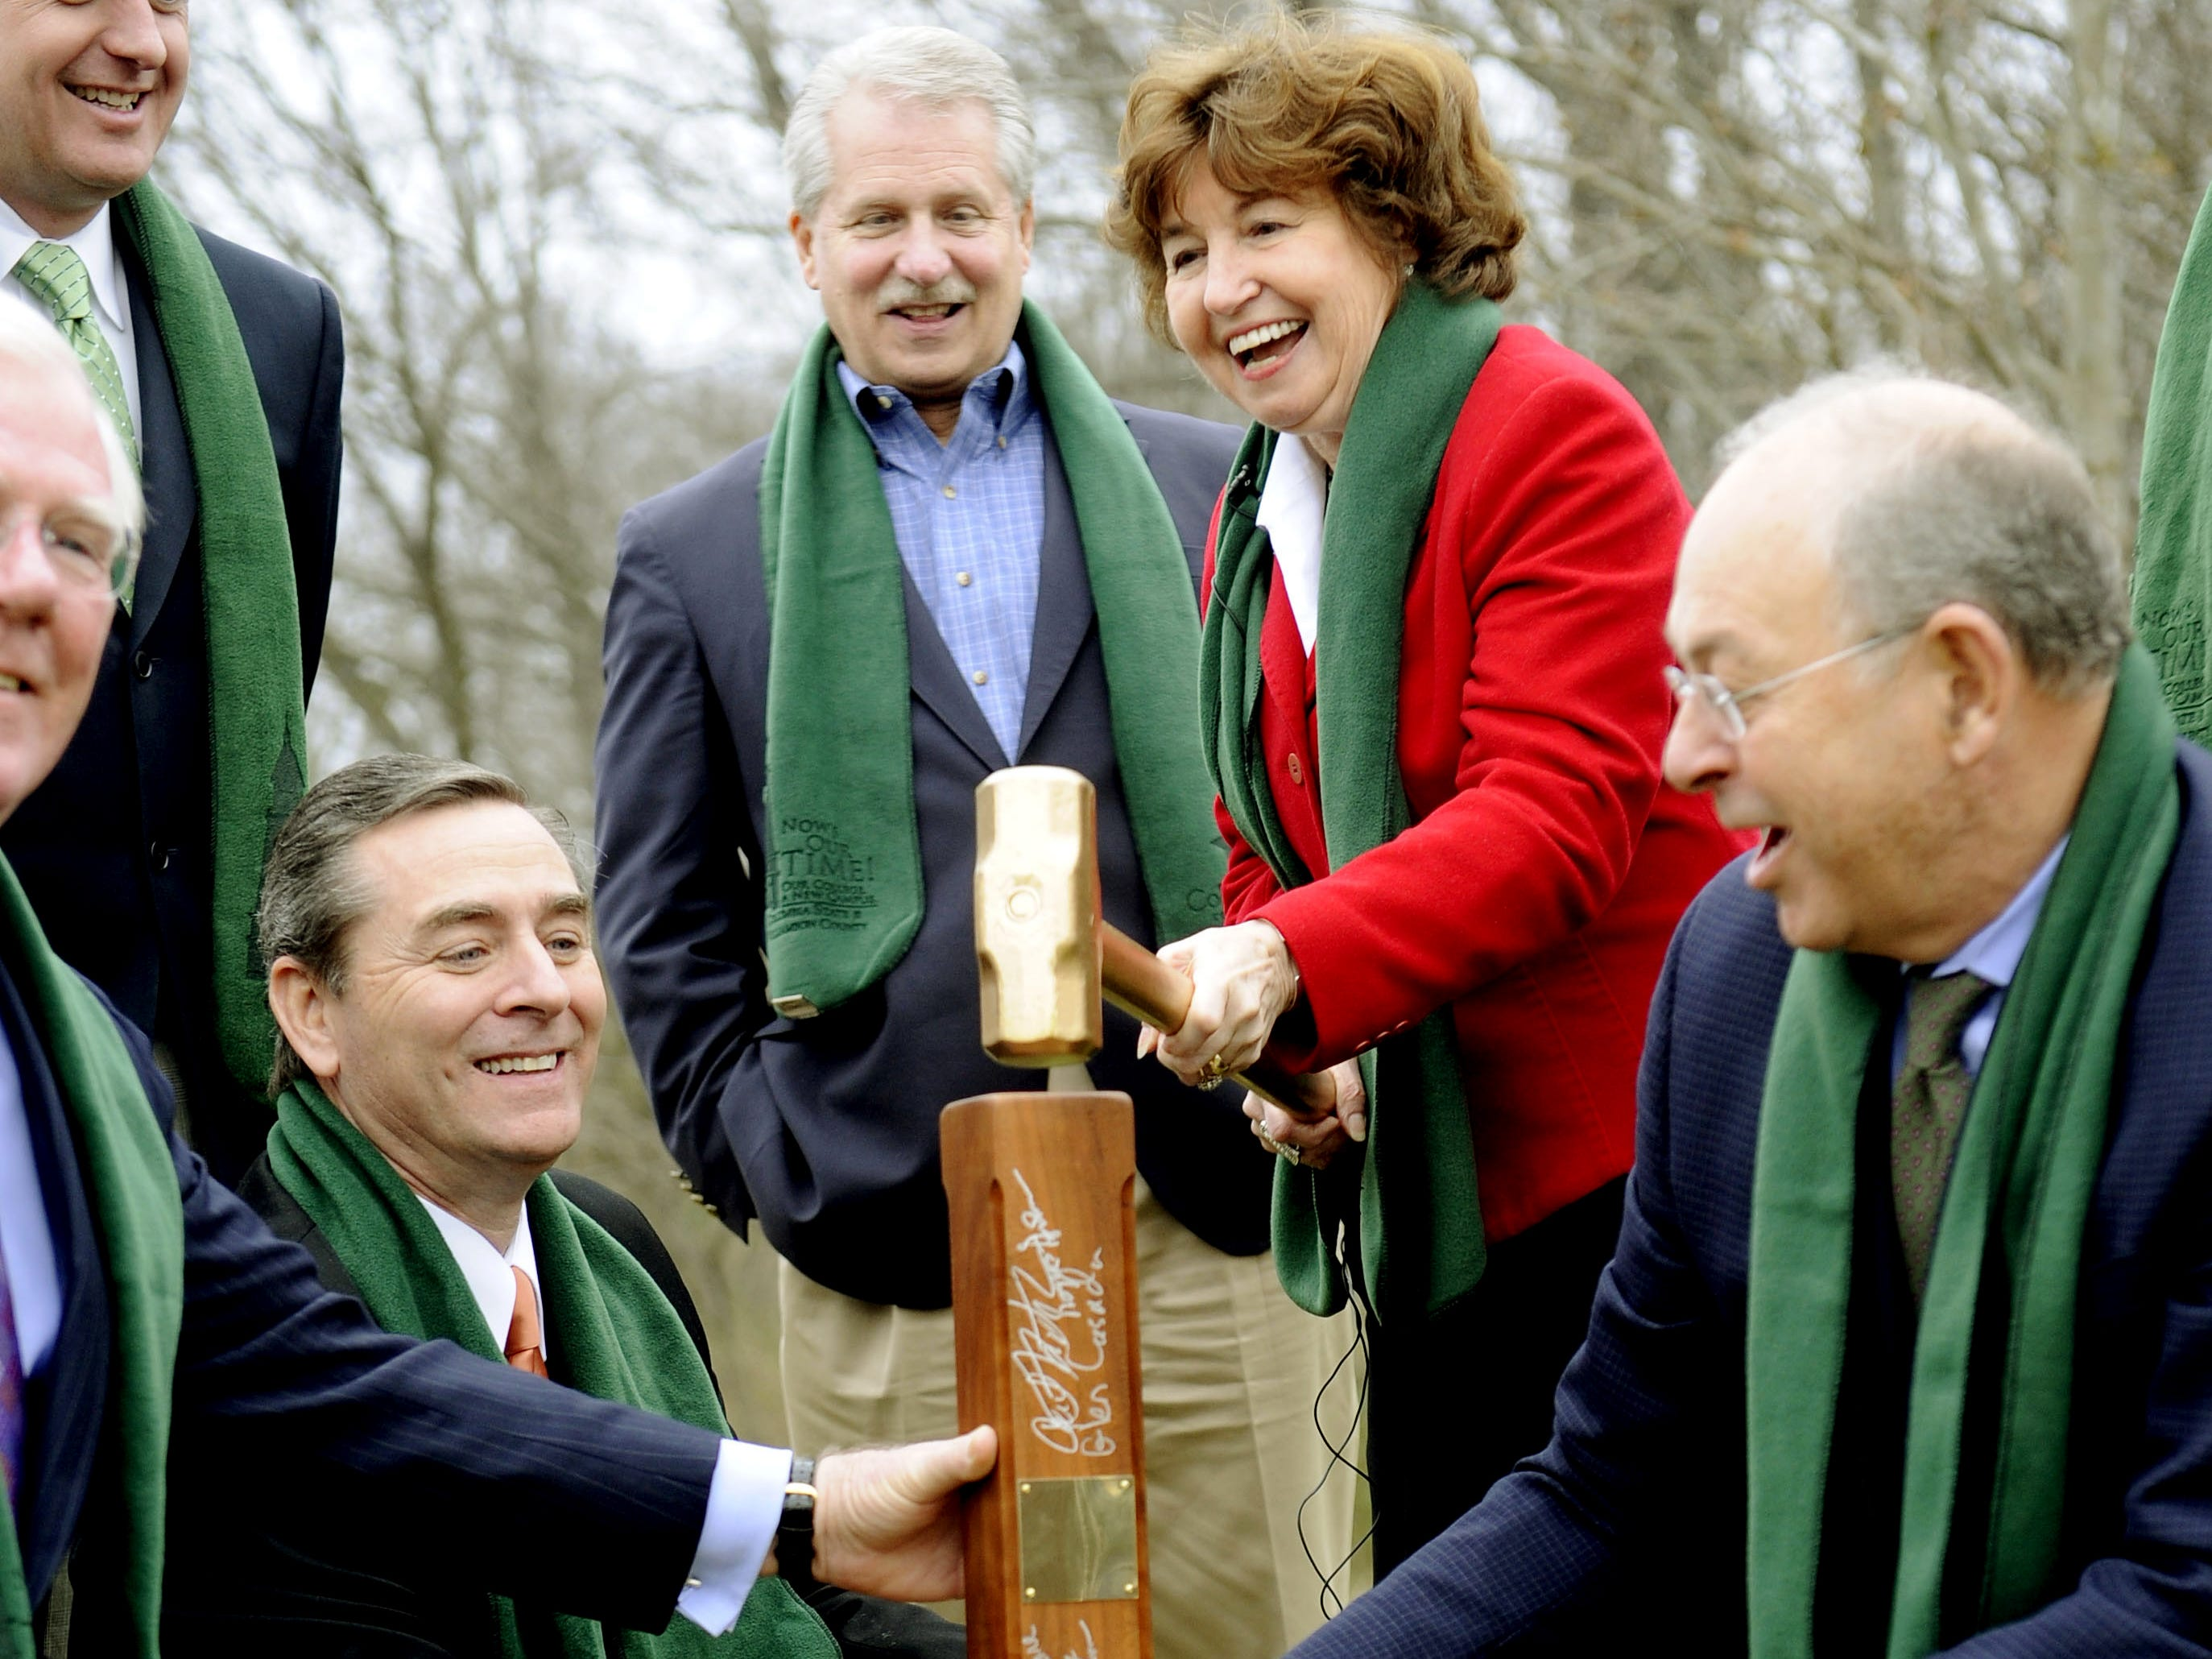 Columbia State Community College President Janet Smith drops the hammer on the fence post marking the college's new building site off Liberty Pike near Carothers Parkway on Jan. 20, 2012. Kneeling are state Reps. Charles Sargent, left, and Glen Casada and Franklin Mayor Ken Moore. Standing are state Sens. Jack Johnson and Bill Ketron.